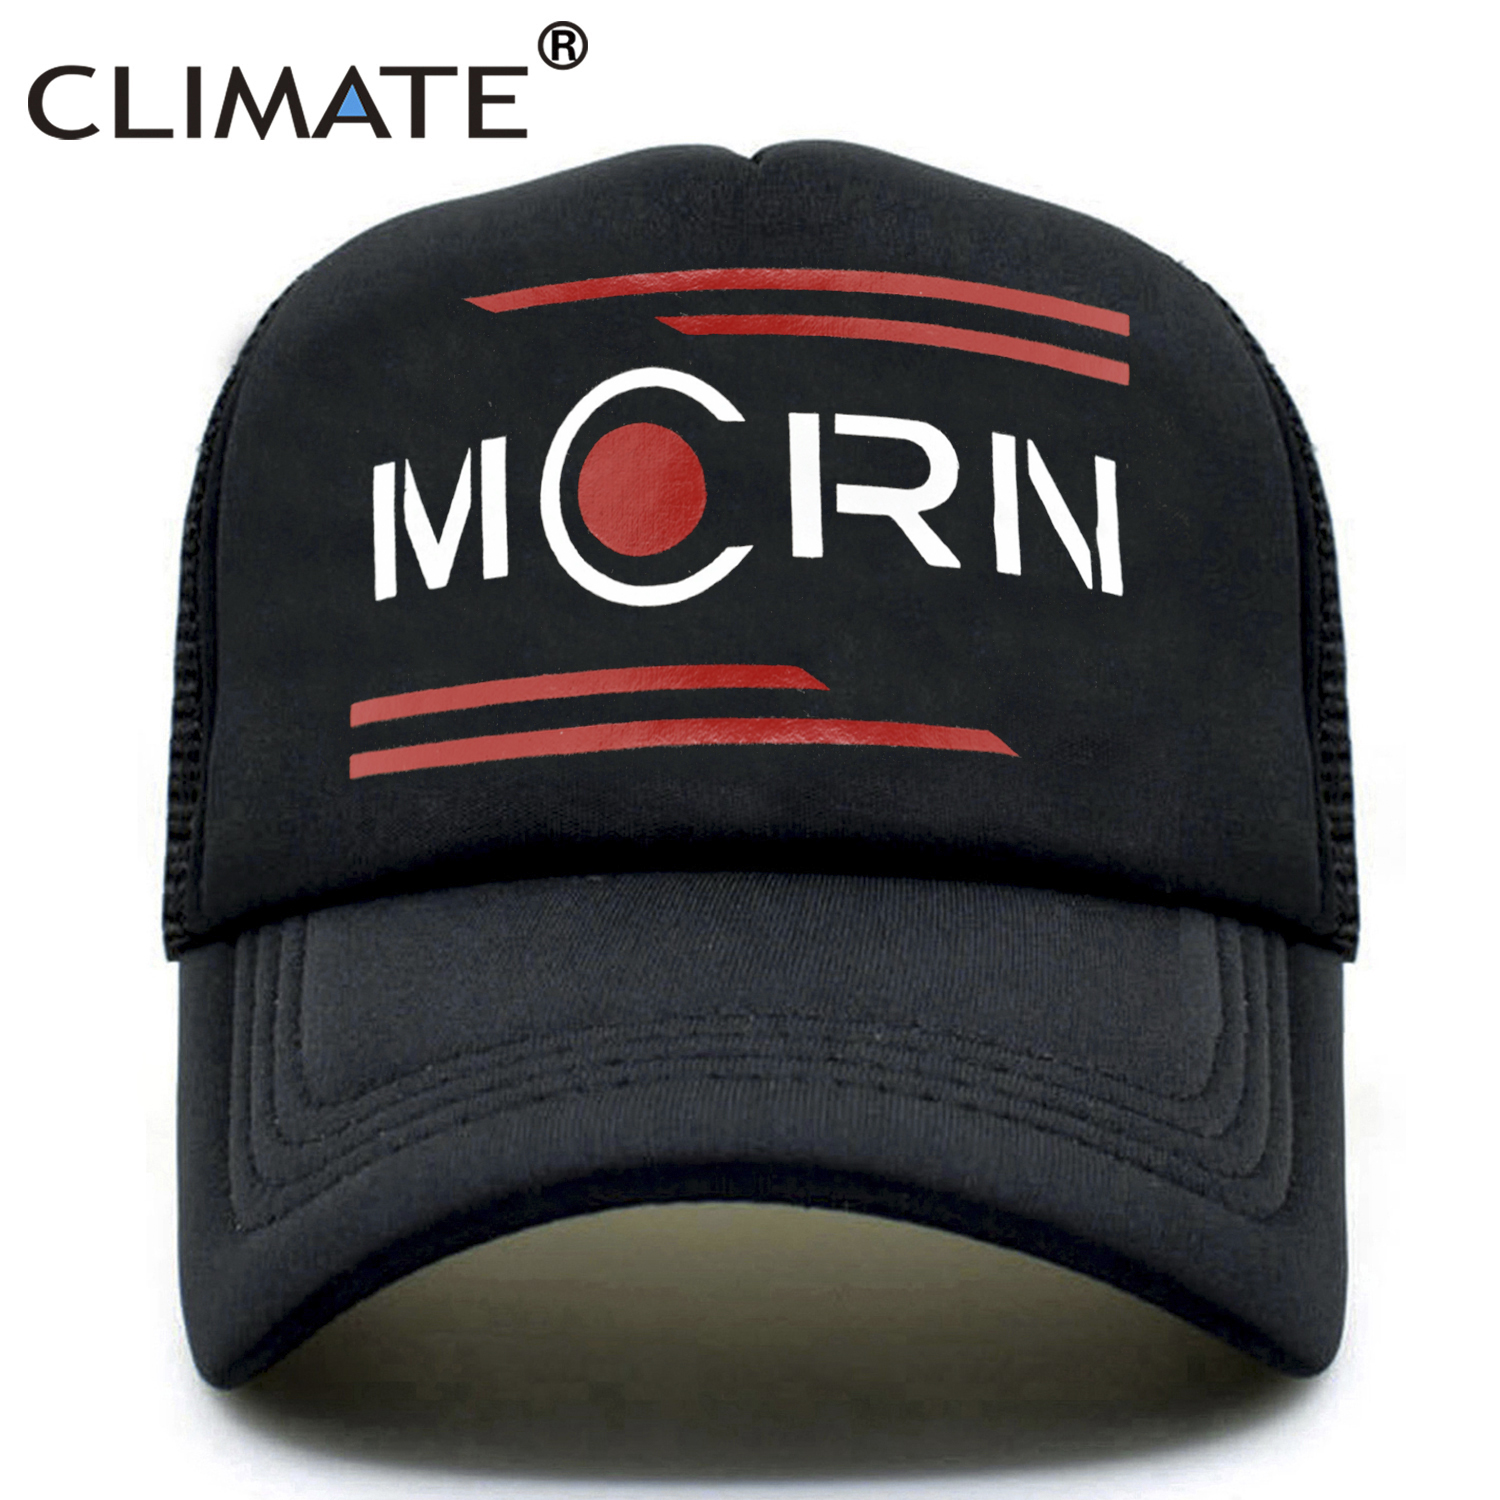 CLIMATE Men Mars Trucker Caps Hat Men Baseball Cap The Expanse Mcrn Cap Hat Mars Rocinante Summer Cool Mesh Baseball Cap Hat Men